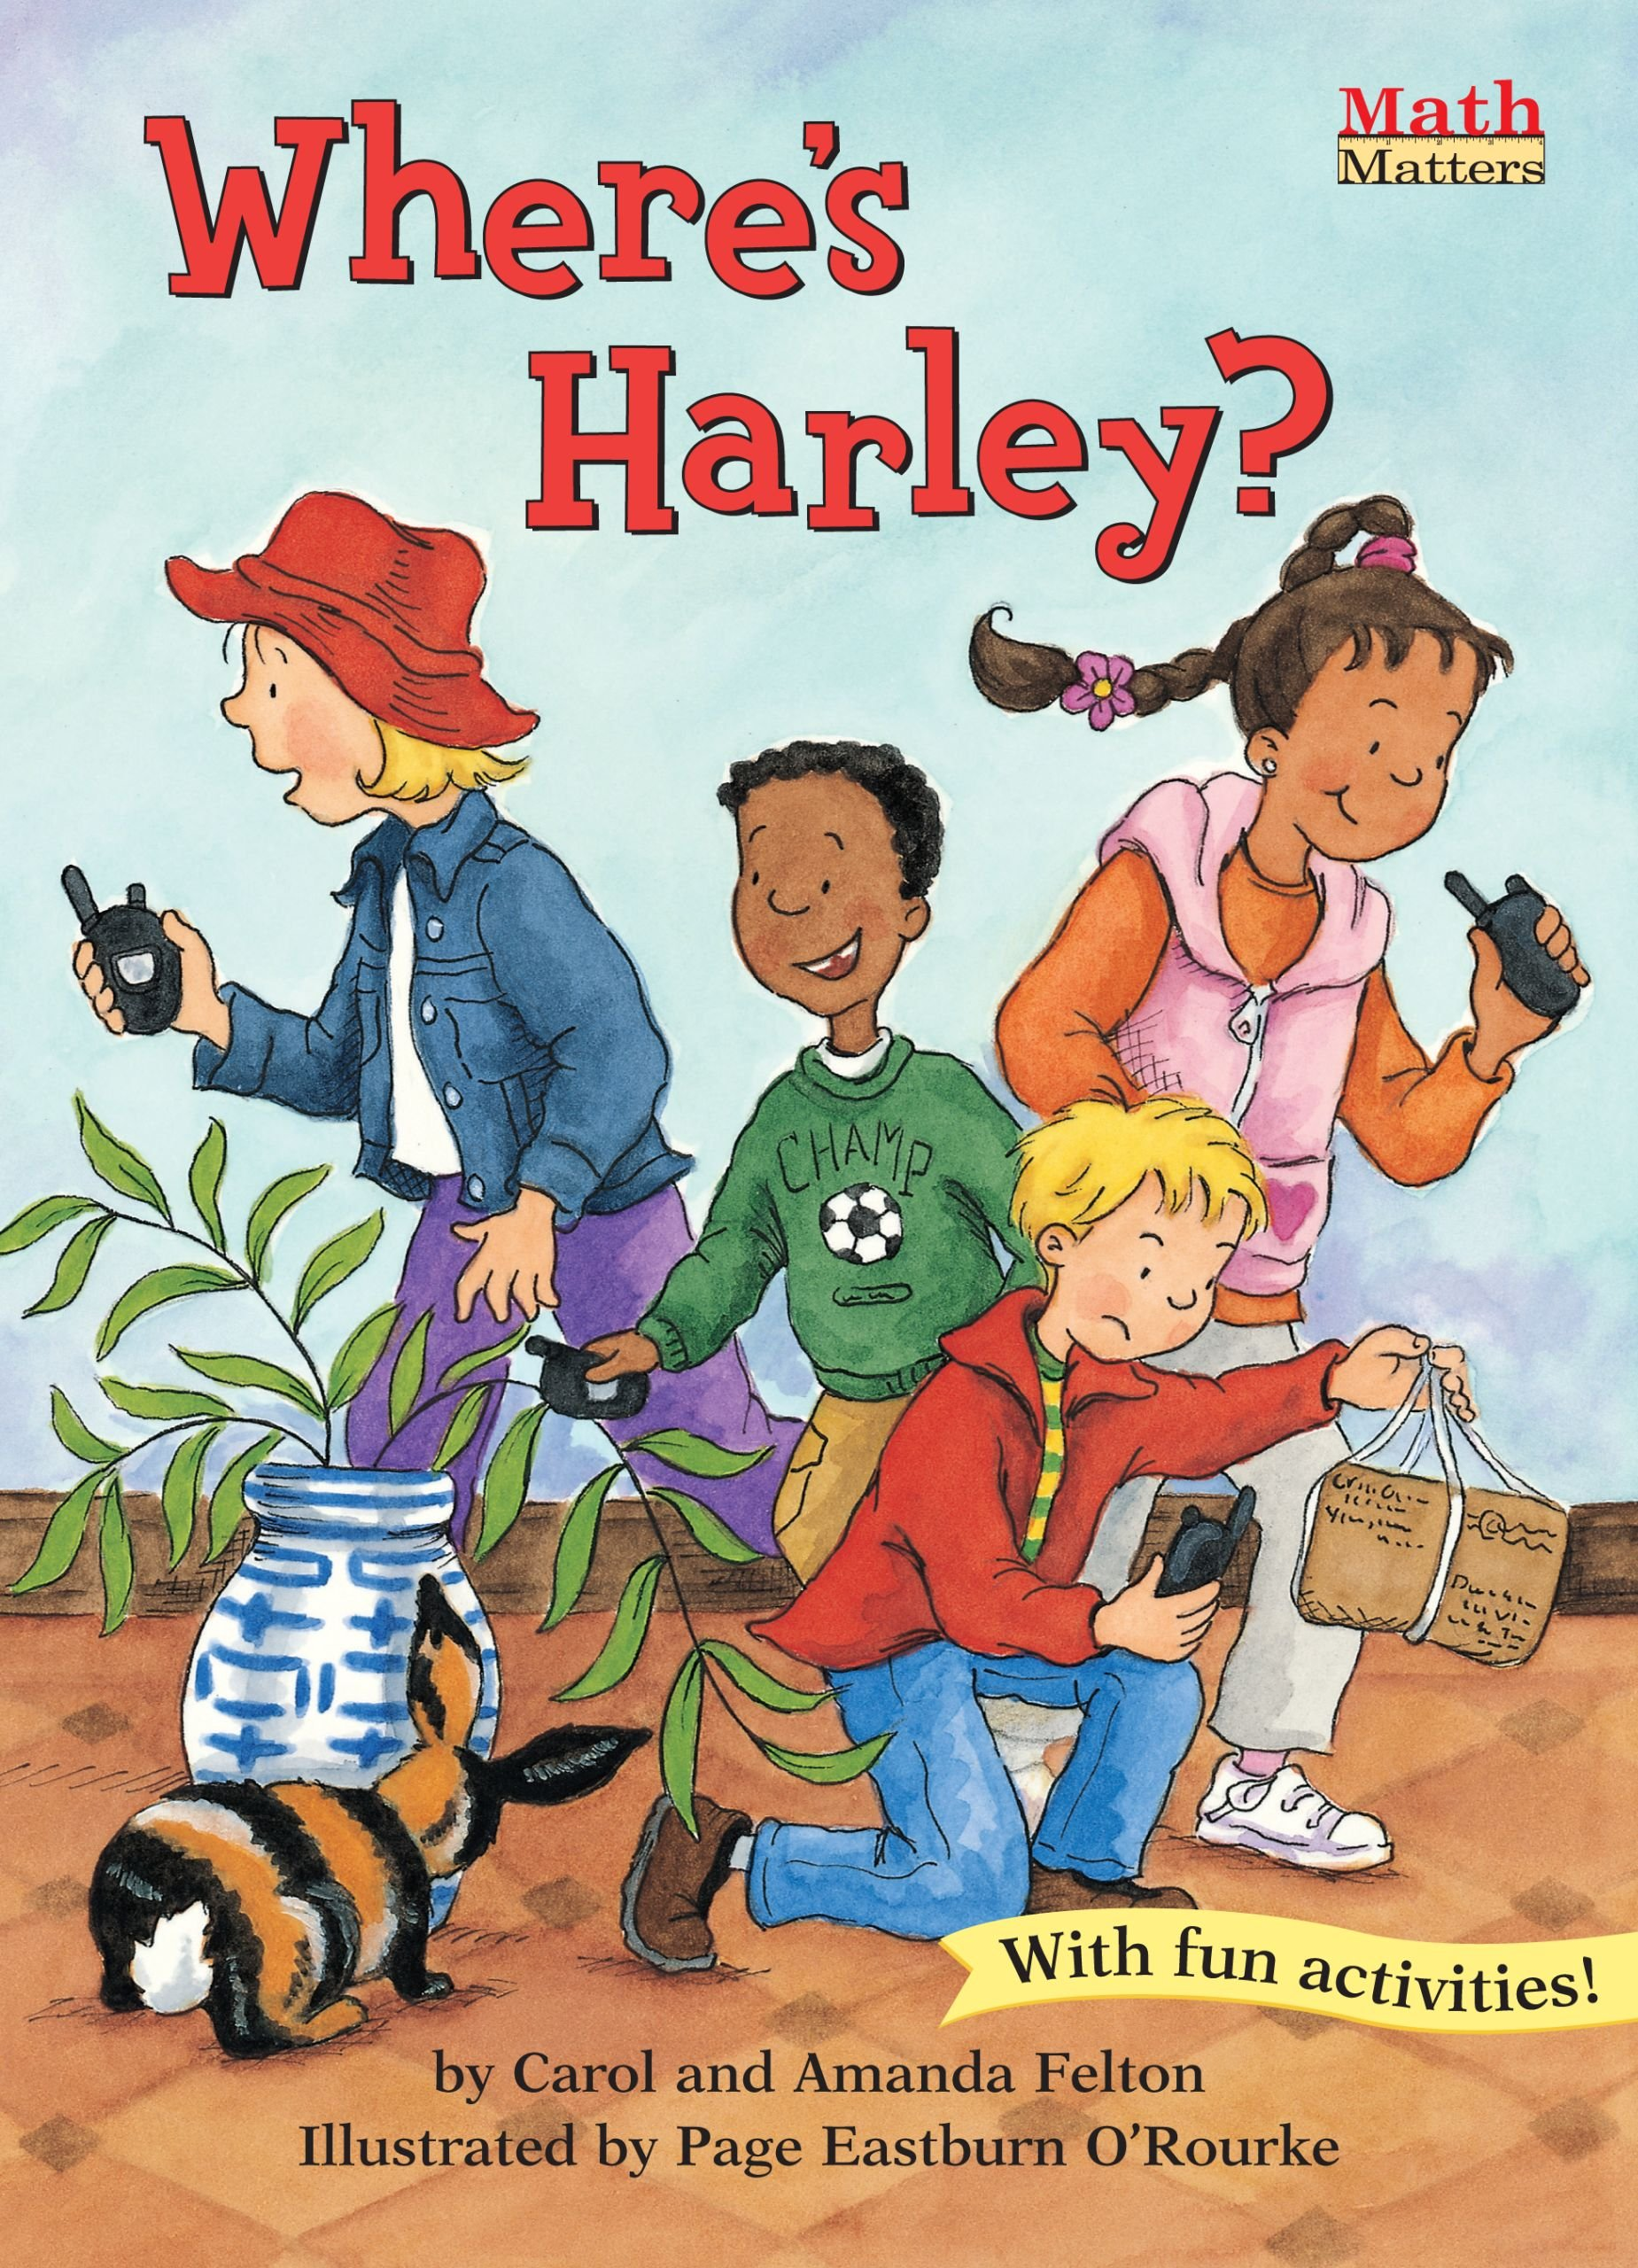 Download Where's Harley? (Math Matters) PDF